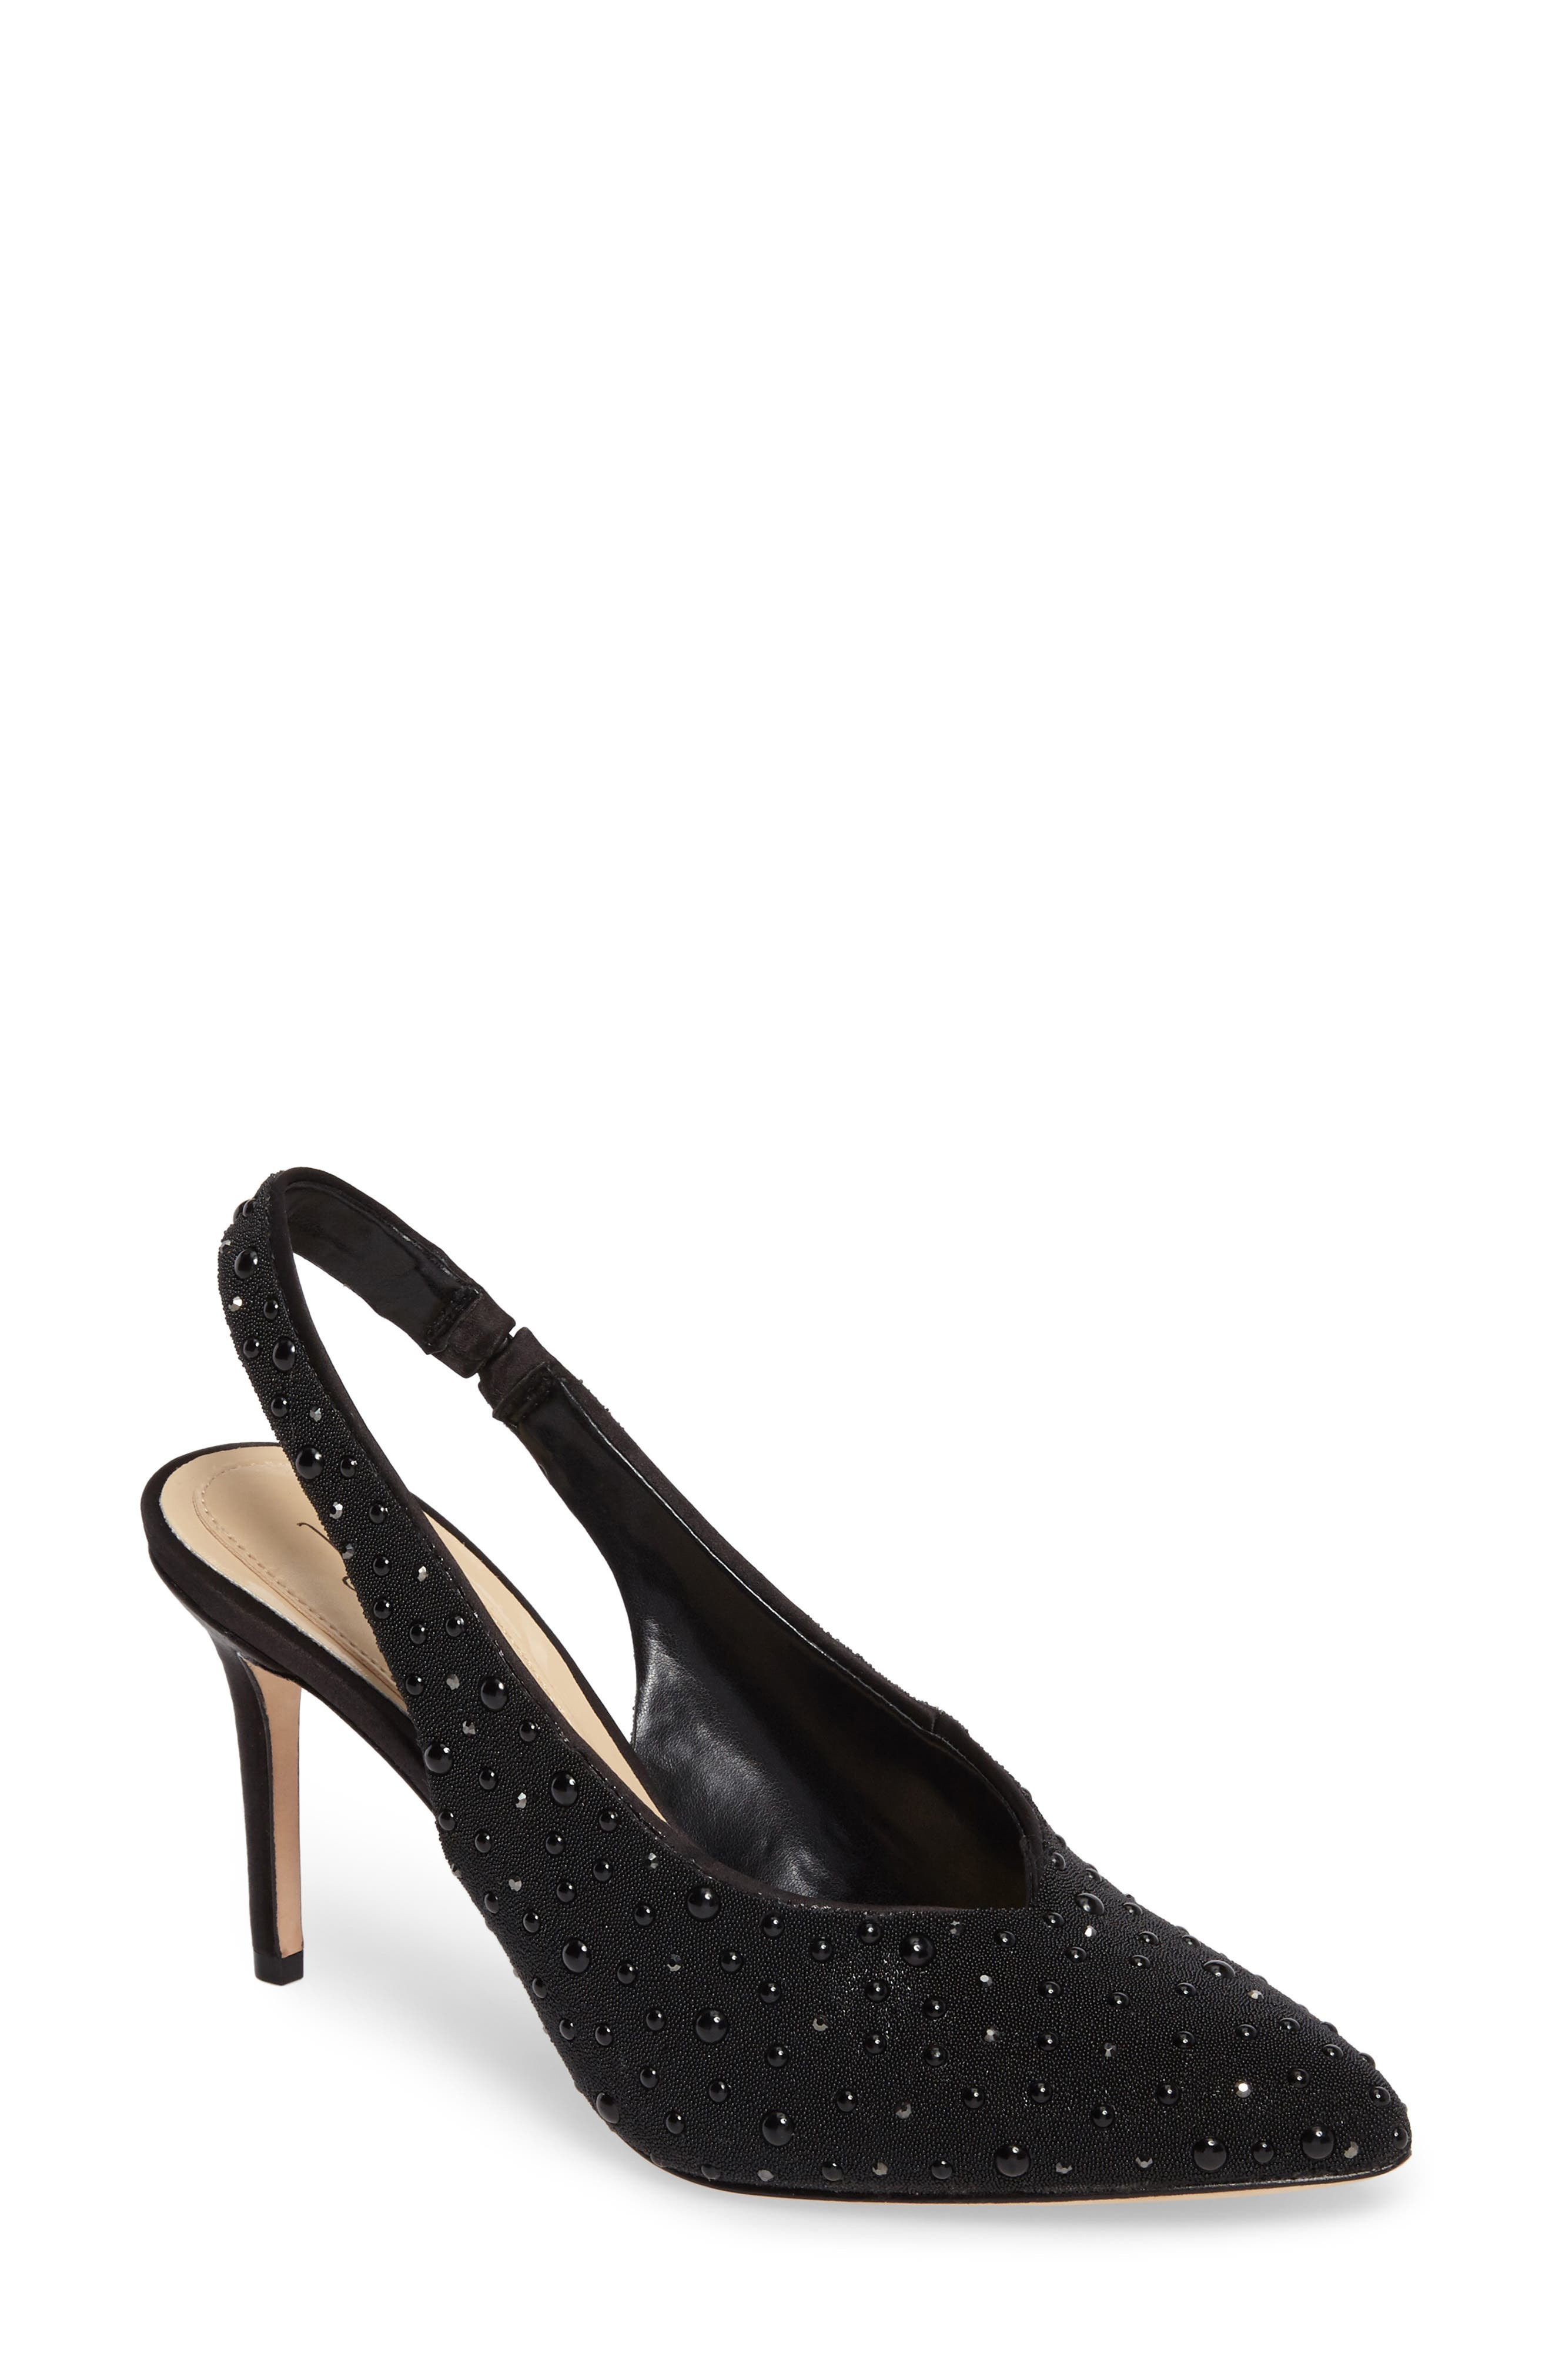 Alternate Image 1 Selected - Imagine by Vince Camuto Mayran Slingback Pump (Women)